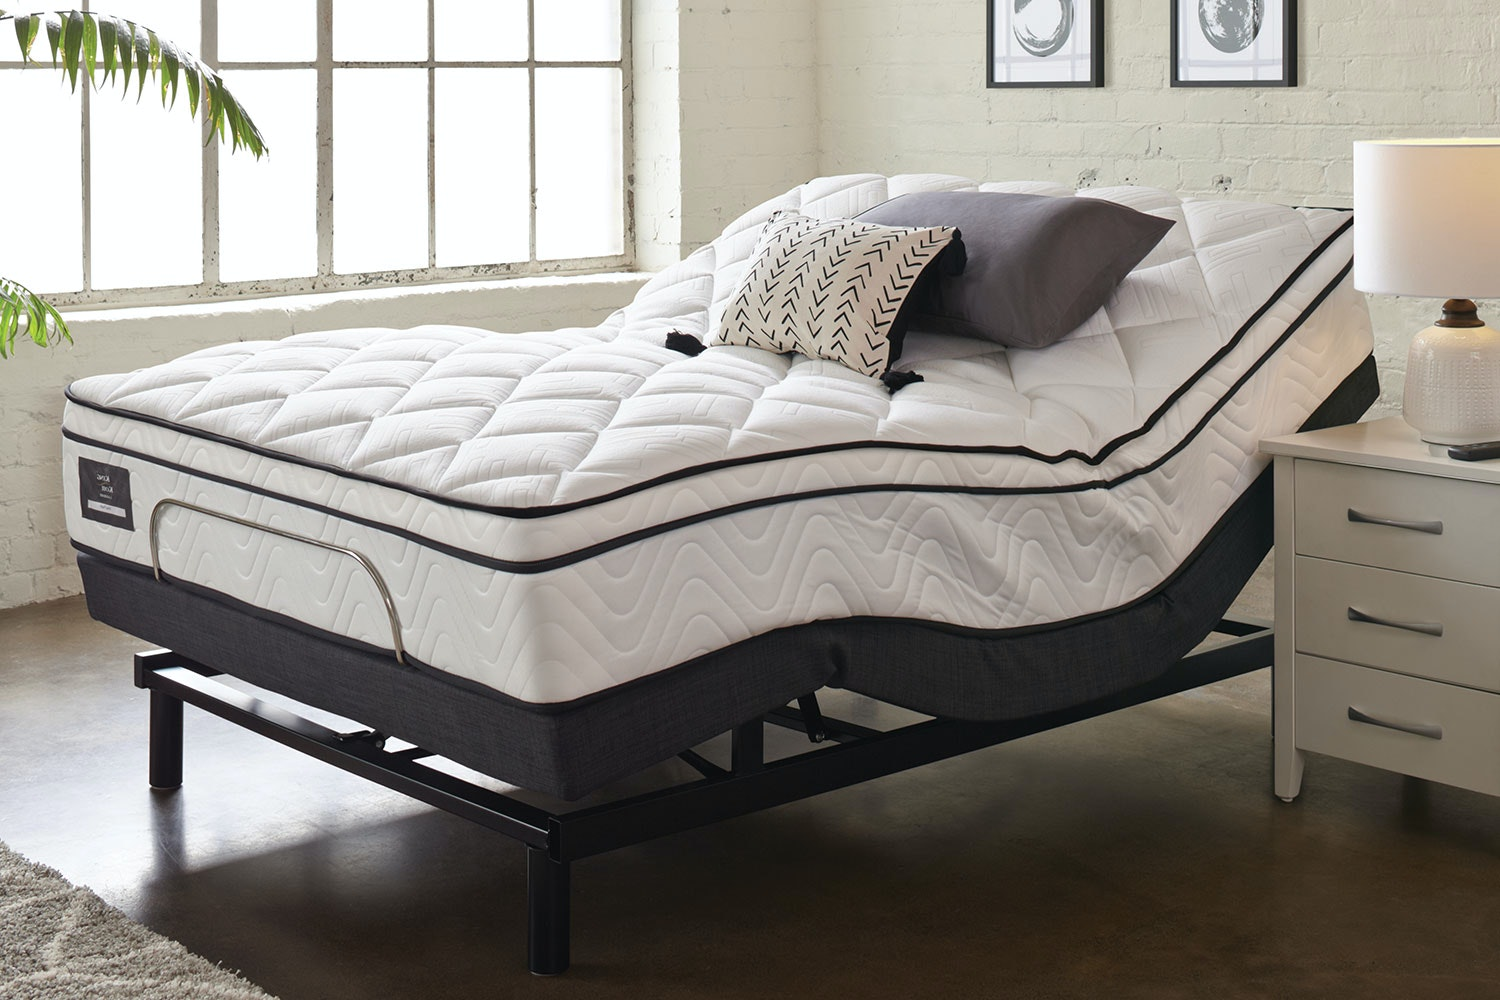 King Koil Viva Plush Queen Mattress with Lifestyle Adjustable Base by Tempur